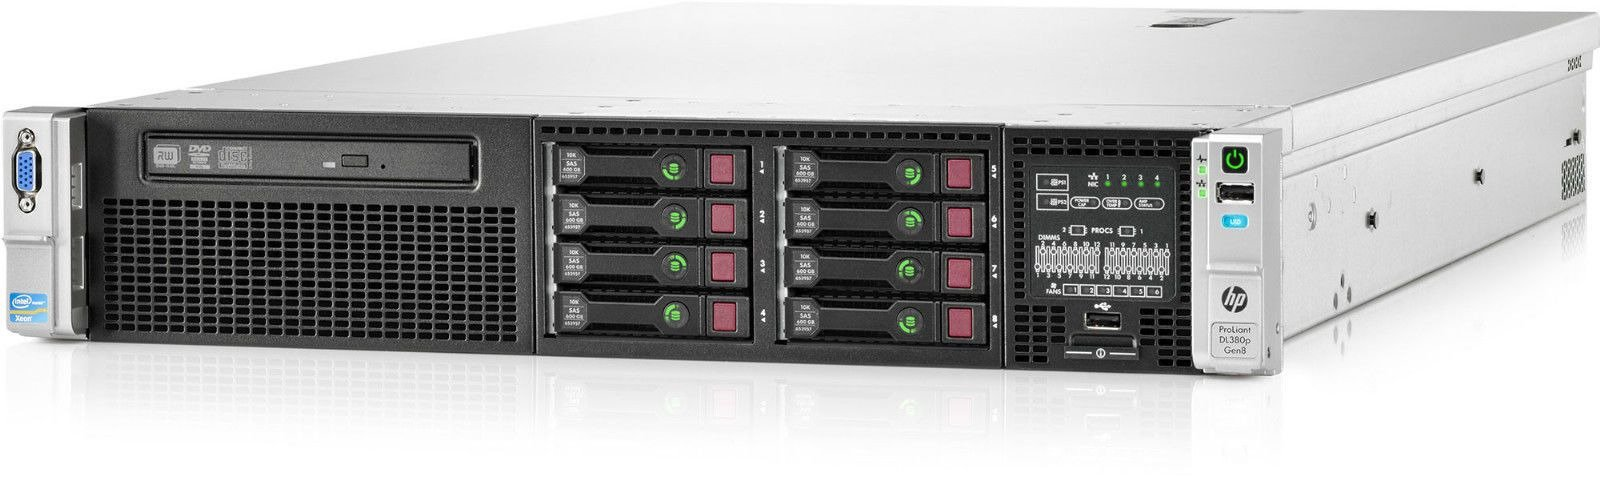 19 Inch Server Rack from Supermicro